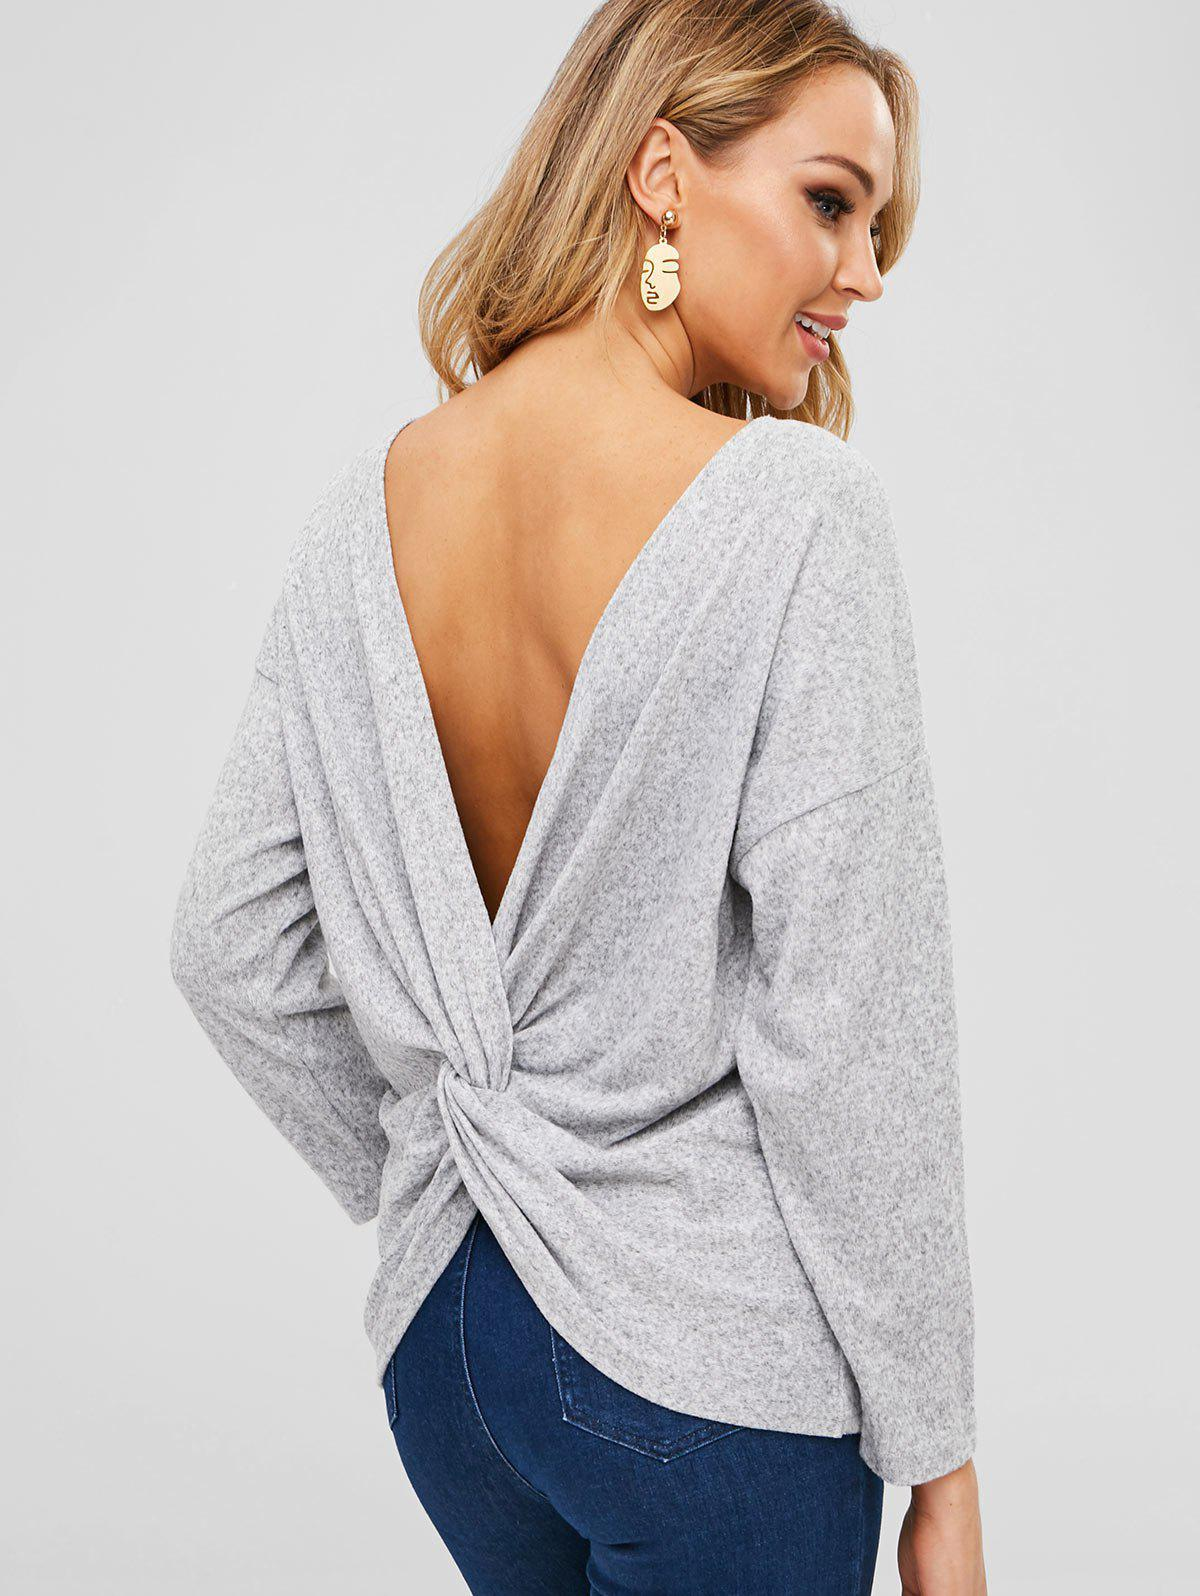 Latest Heathered Twist Open Back Sweater